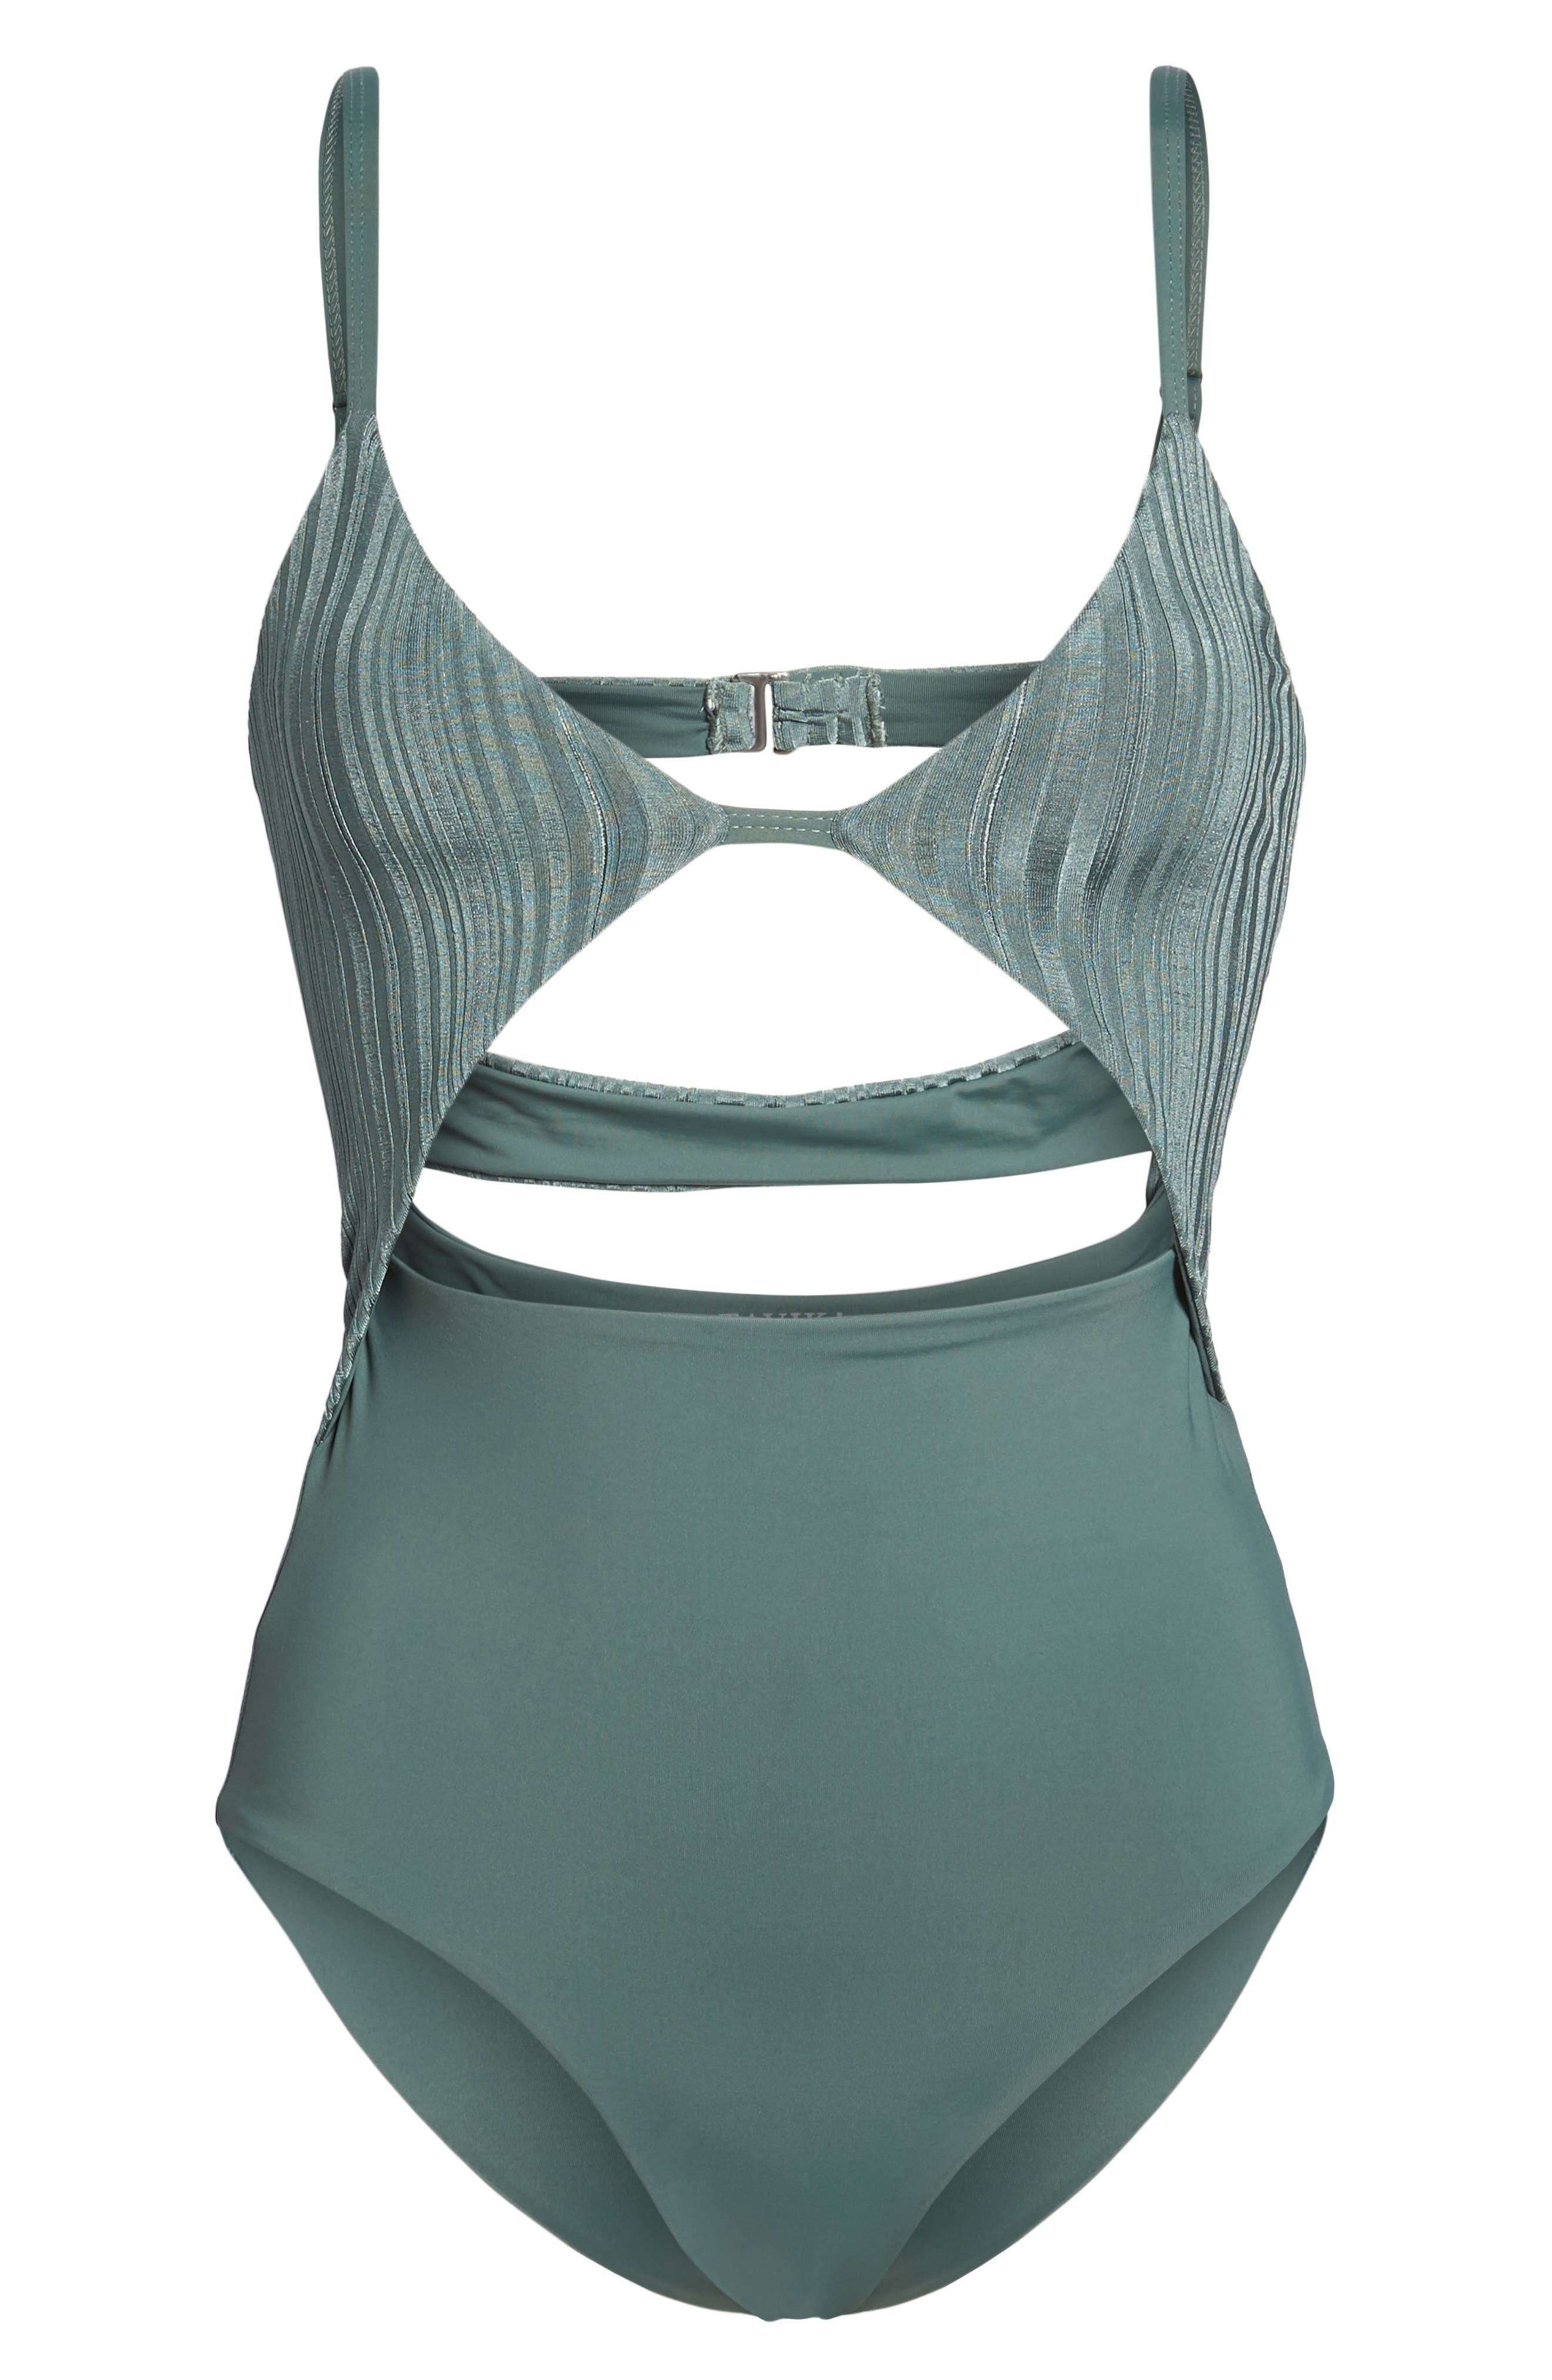 TAVIK, Penelope Cutout One-Piece Swimsuit, Alternate thumbnail 7, color, MEADOW GREEN